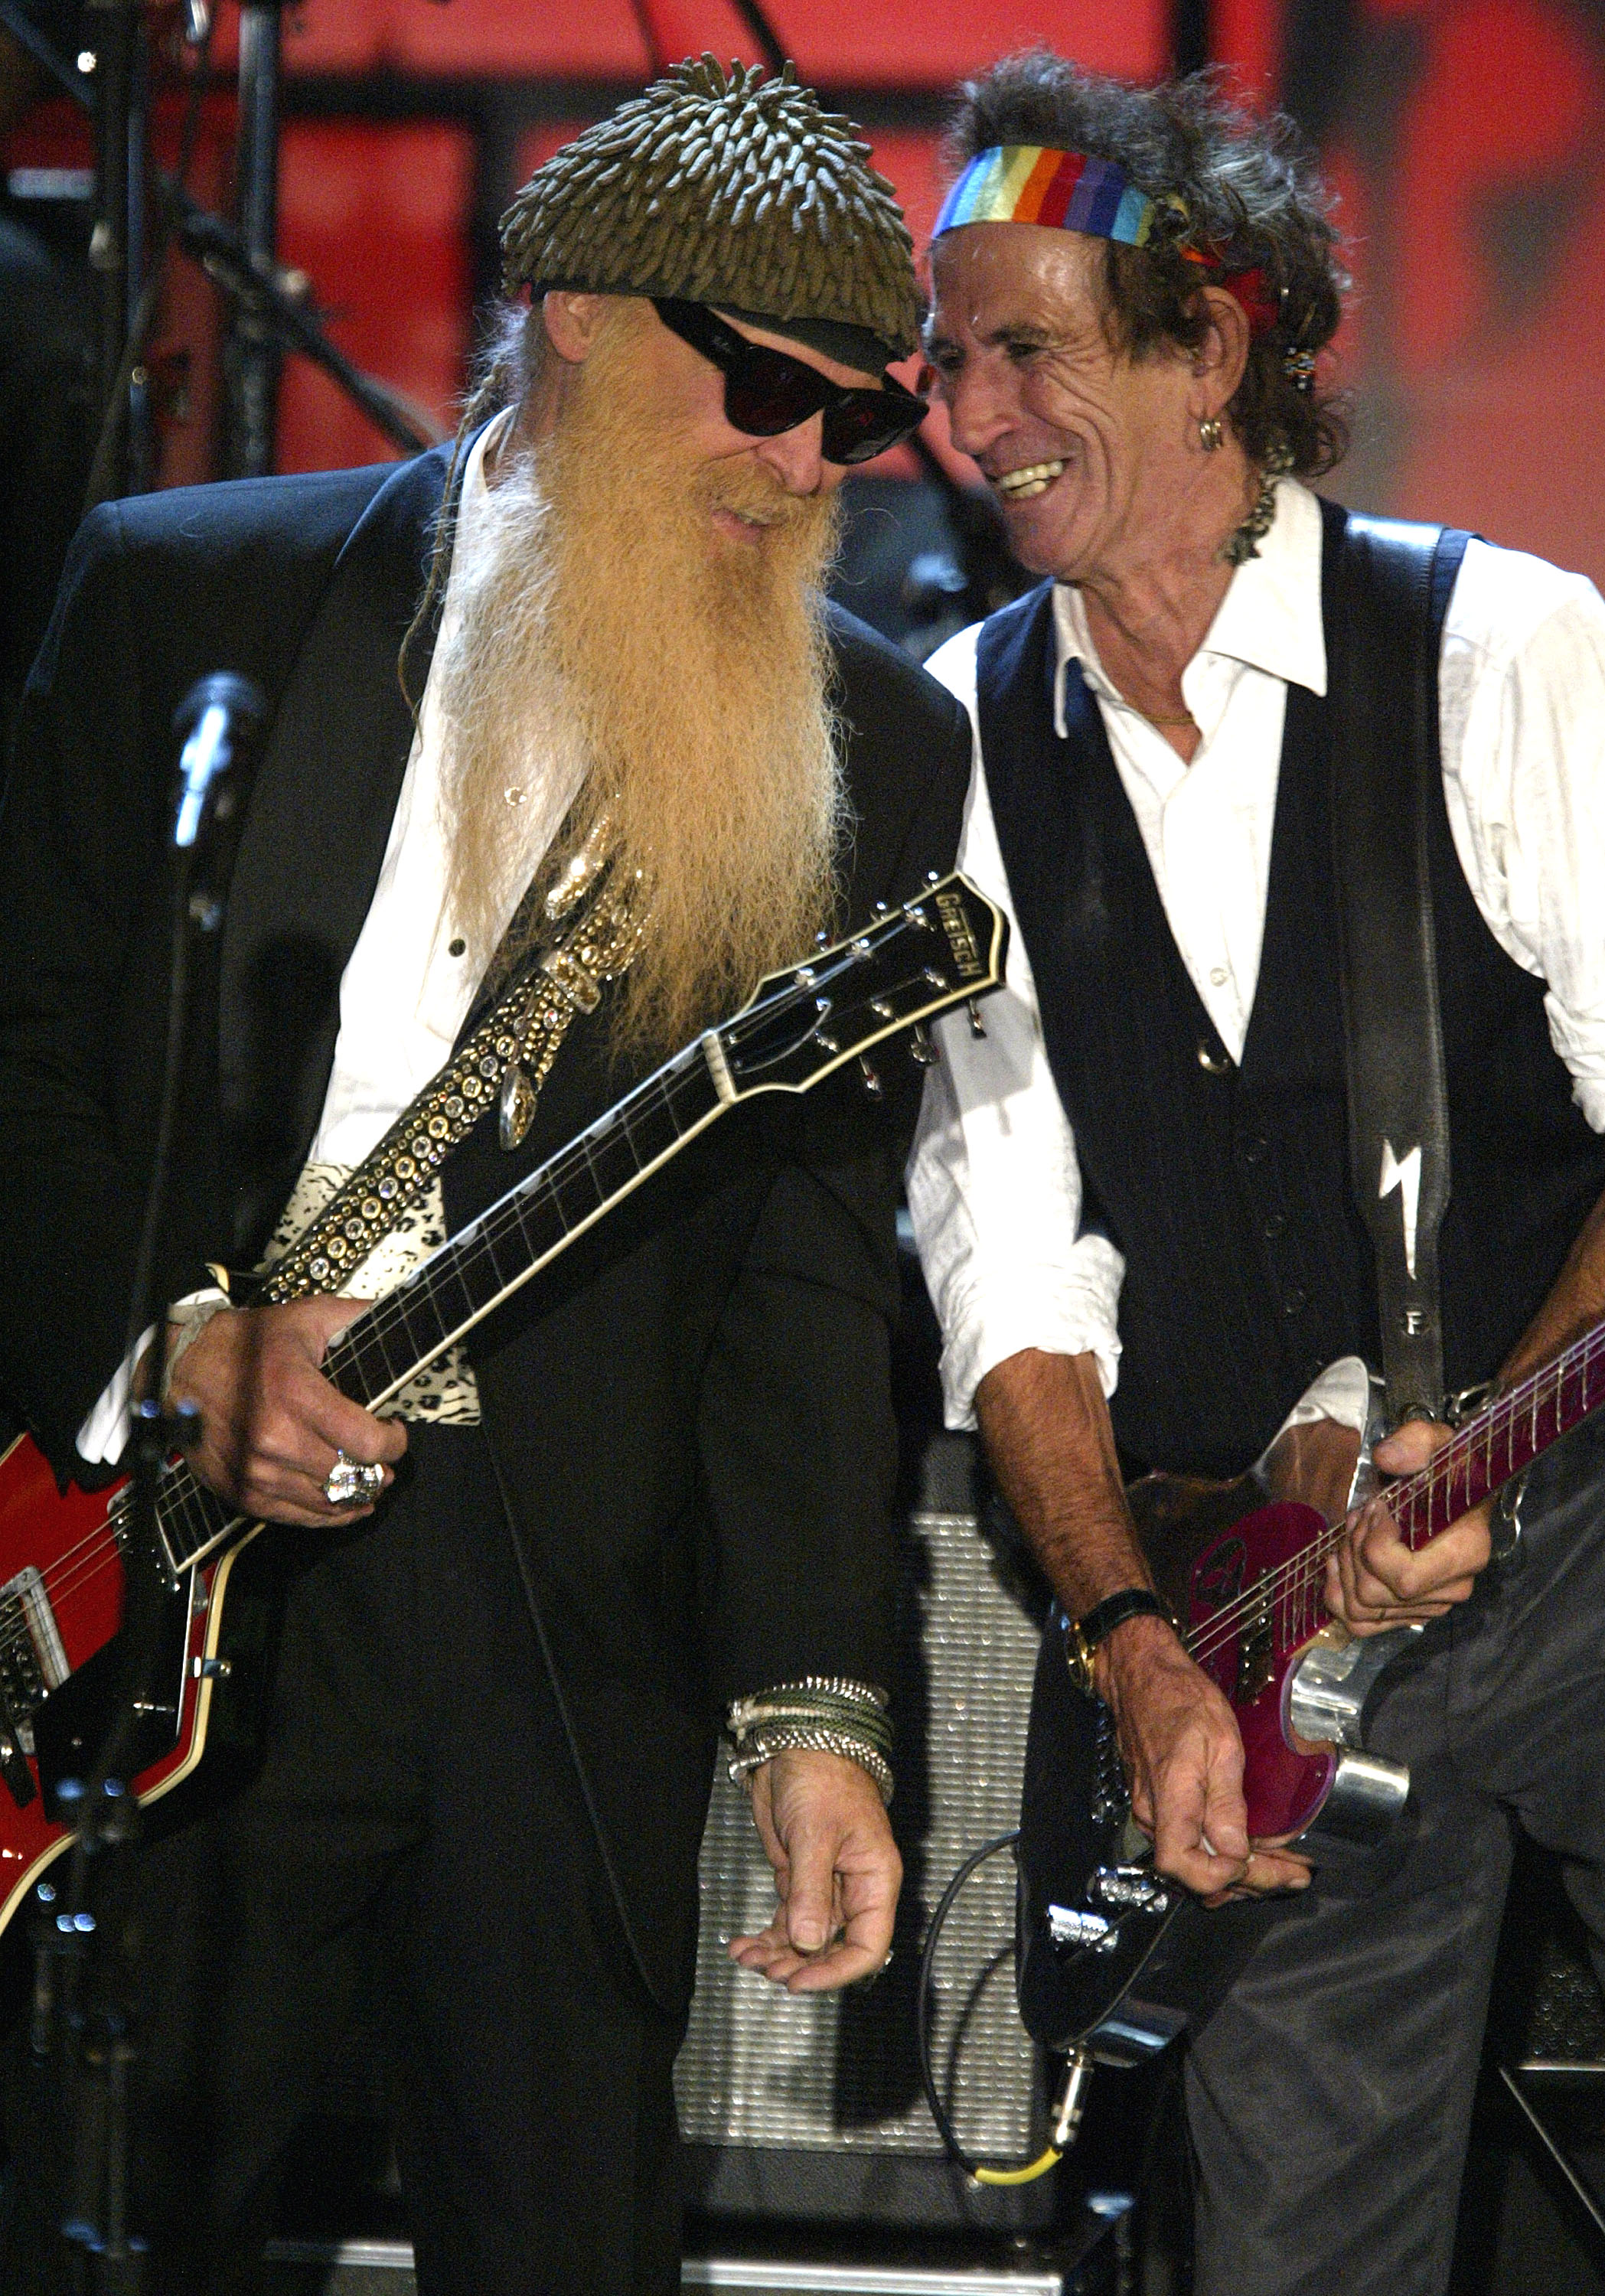 NEW YORK - MARCH 15:  ZZ Top and Keith Richards perform onstage at the Rock & Roll Hall Of Fame 19th Annual Induction Dinner at the Waldorf Astoria Hotel March 15, 2004 in New York City.  (Photo by Frank Micelotta/Getty Images)